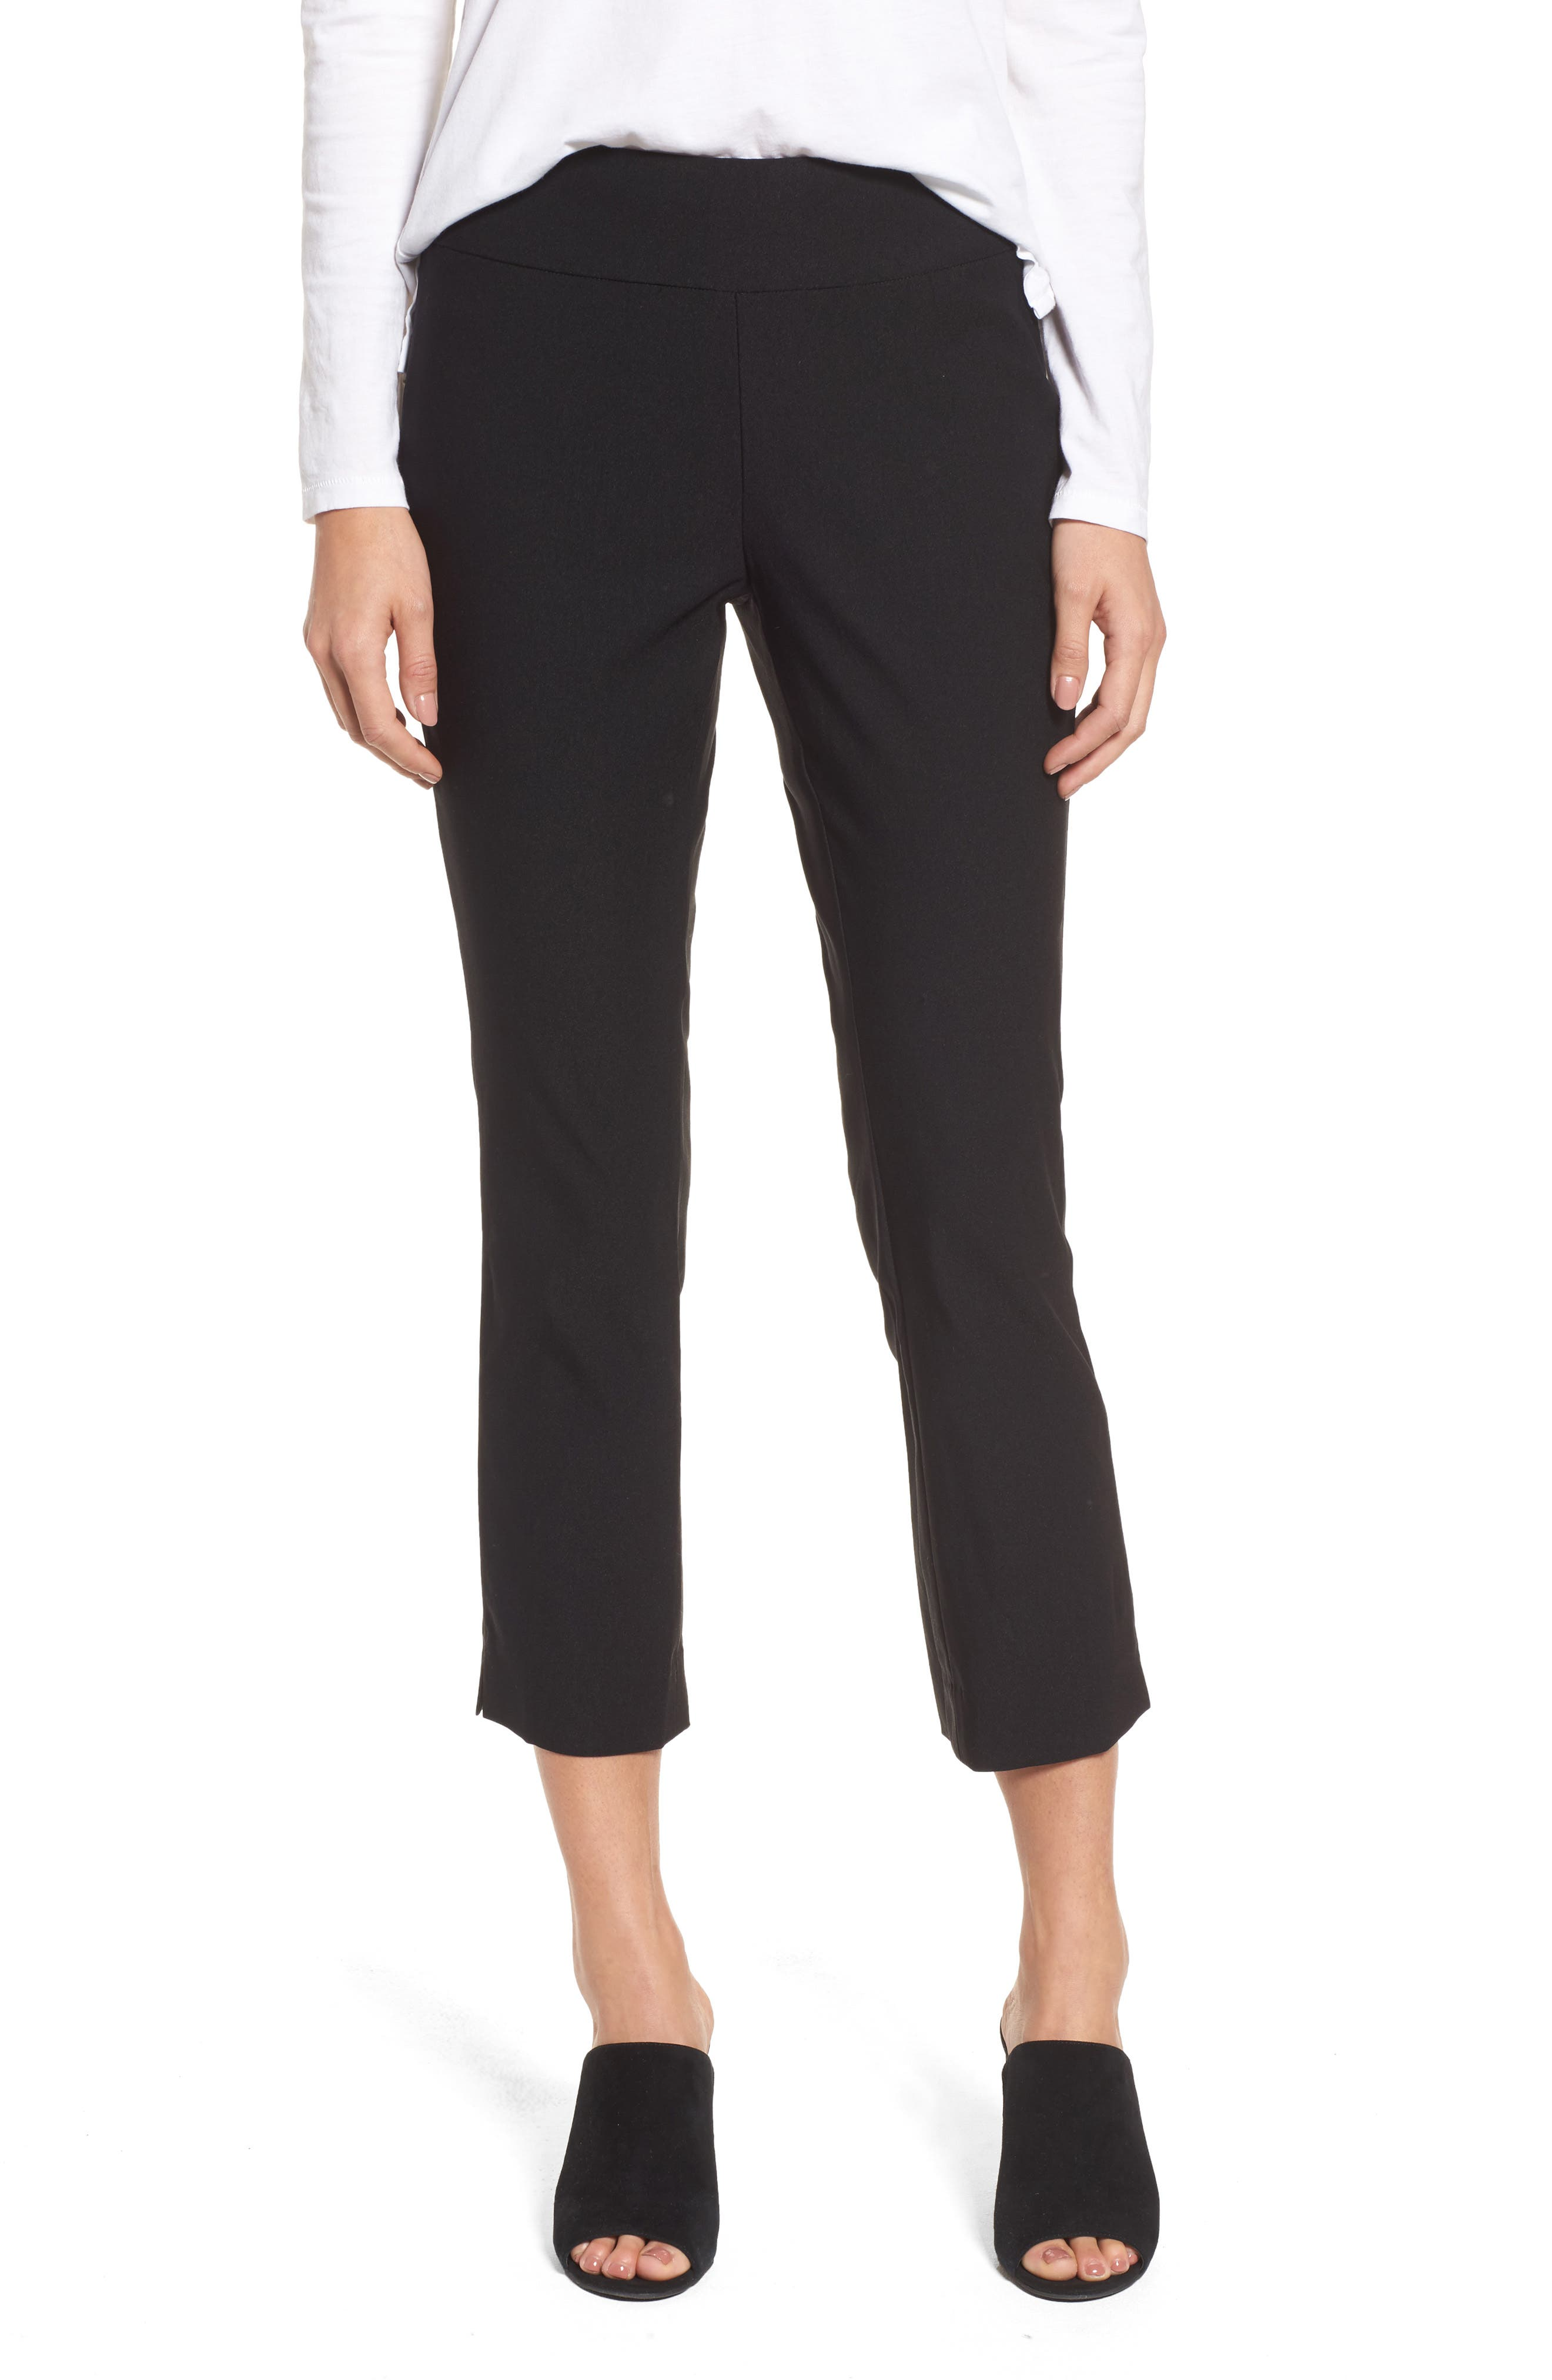 Wonder Stretch Crop Pants,                         Main,                         color, Black Onyx